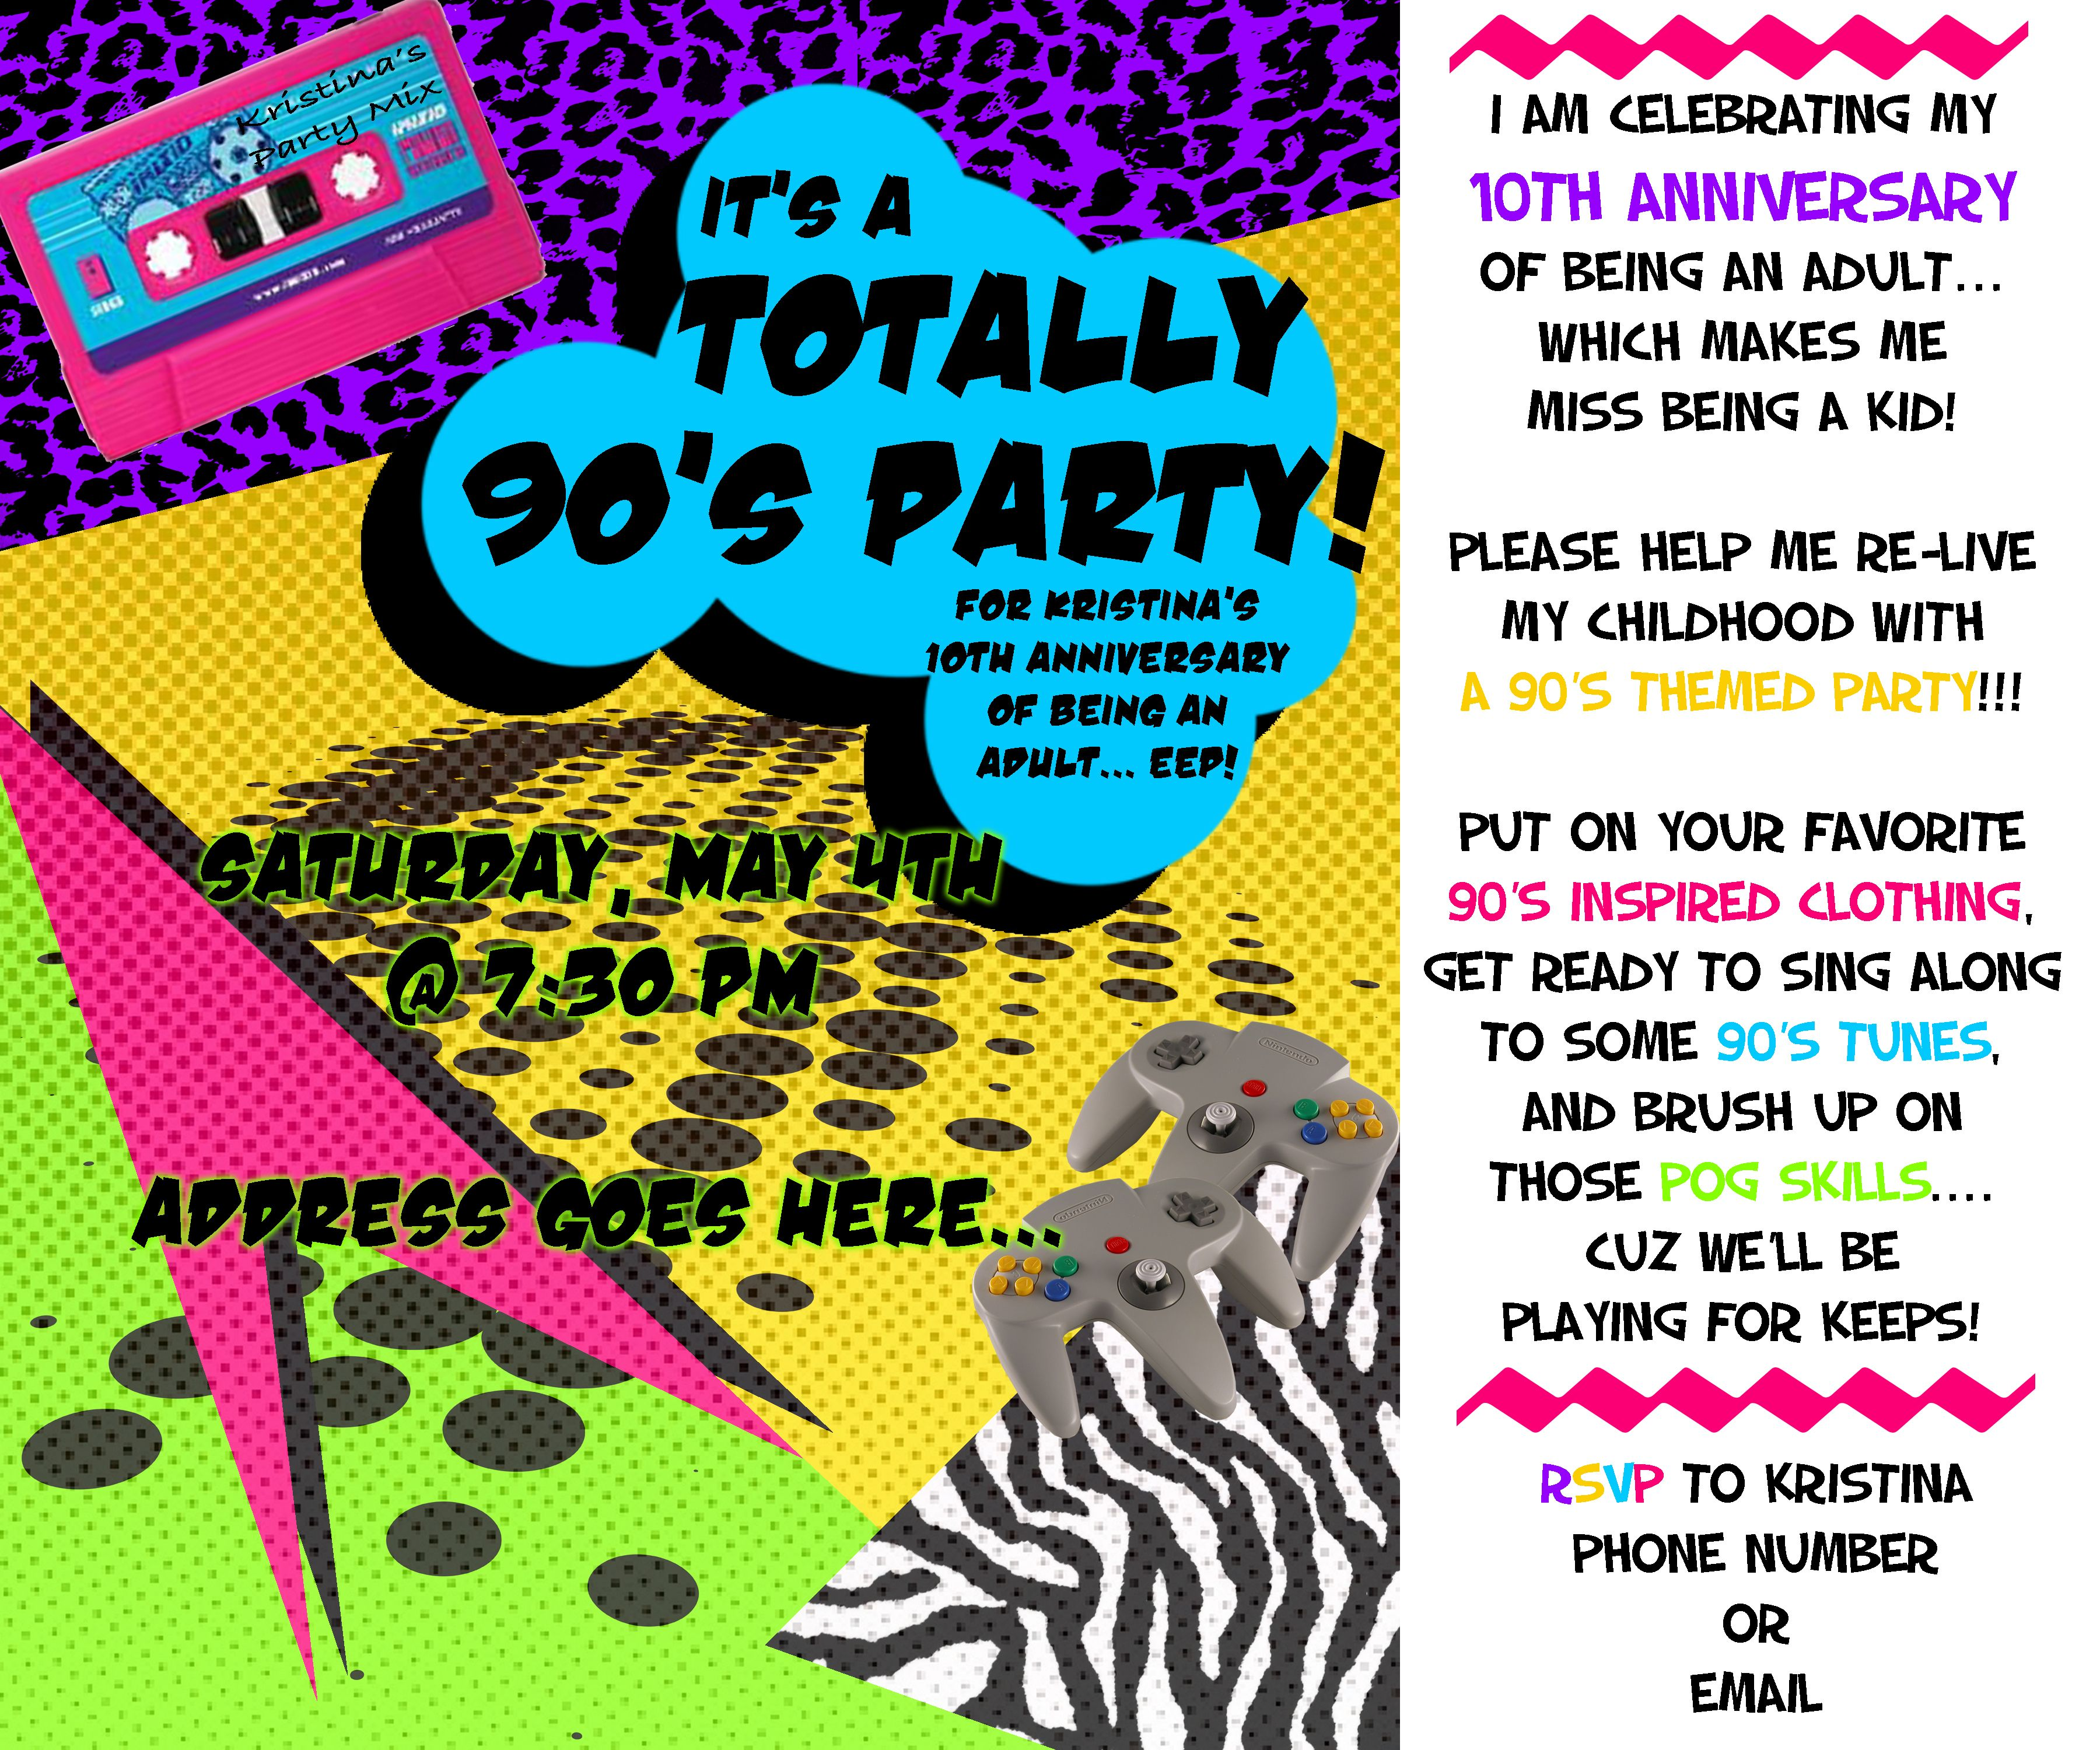 Themed Parties The S Themed Parties S Party And Birthdays - 90s party invitation template